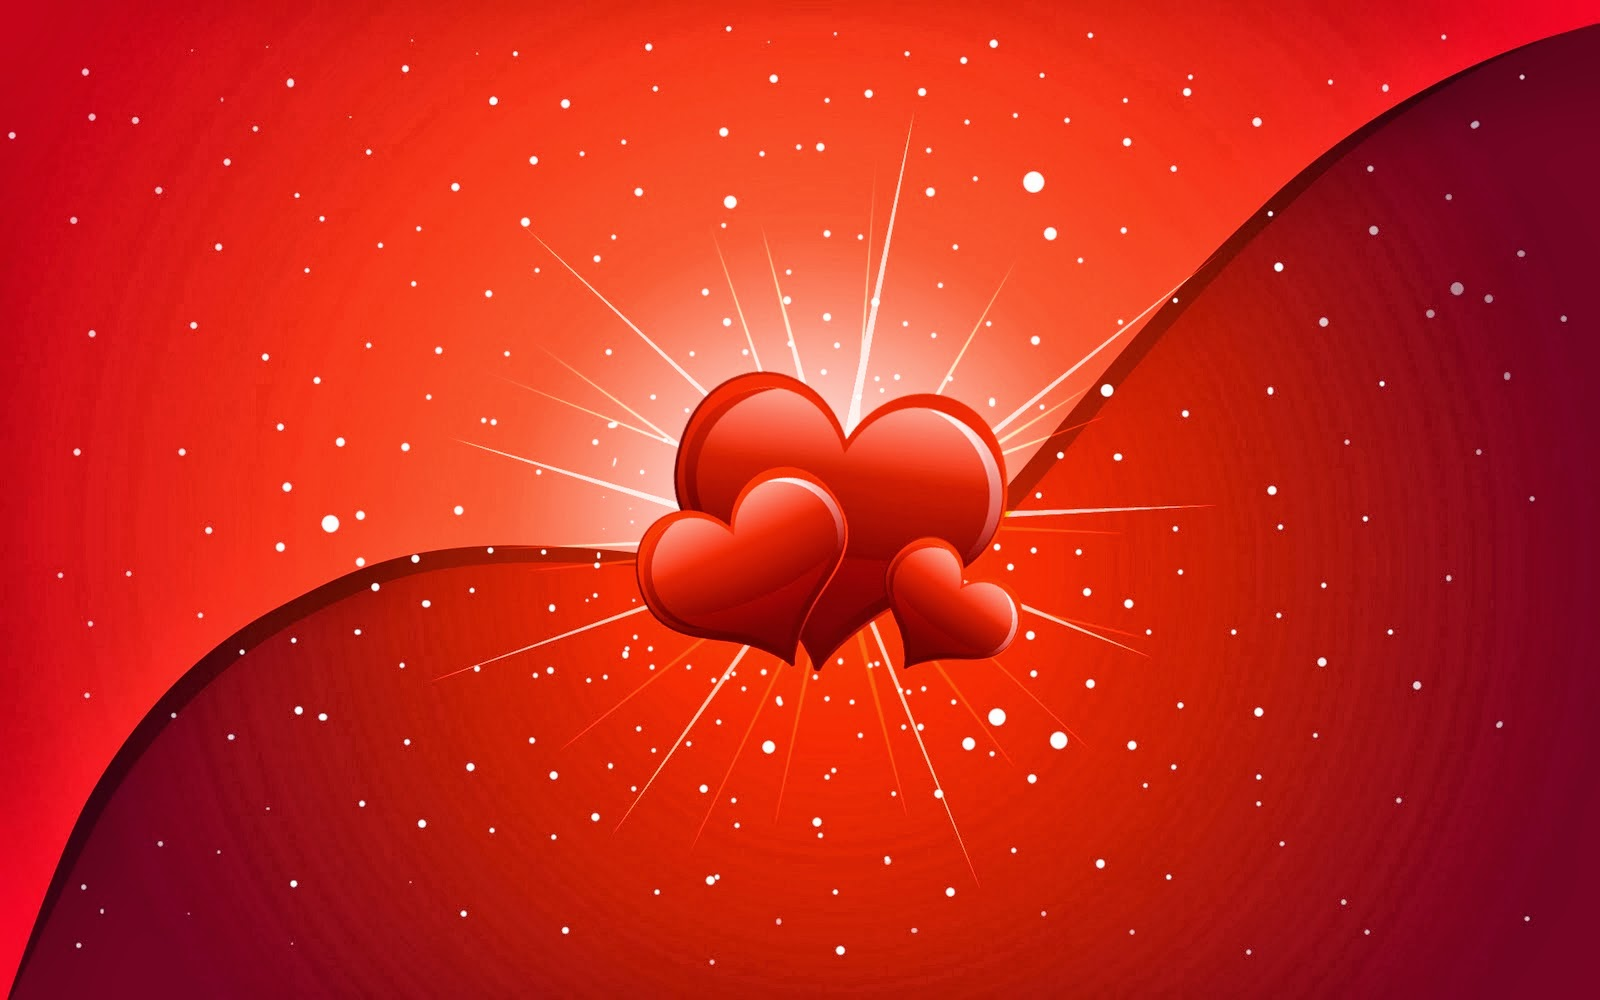 HD Lovely Valentines Day Wallpapers Allfreshwallpaper 1600x1000